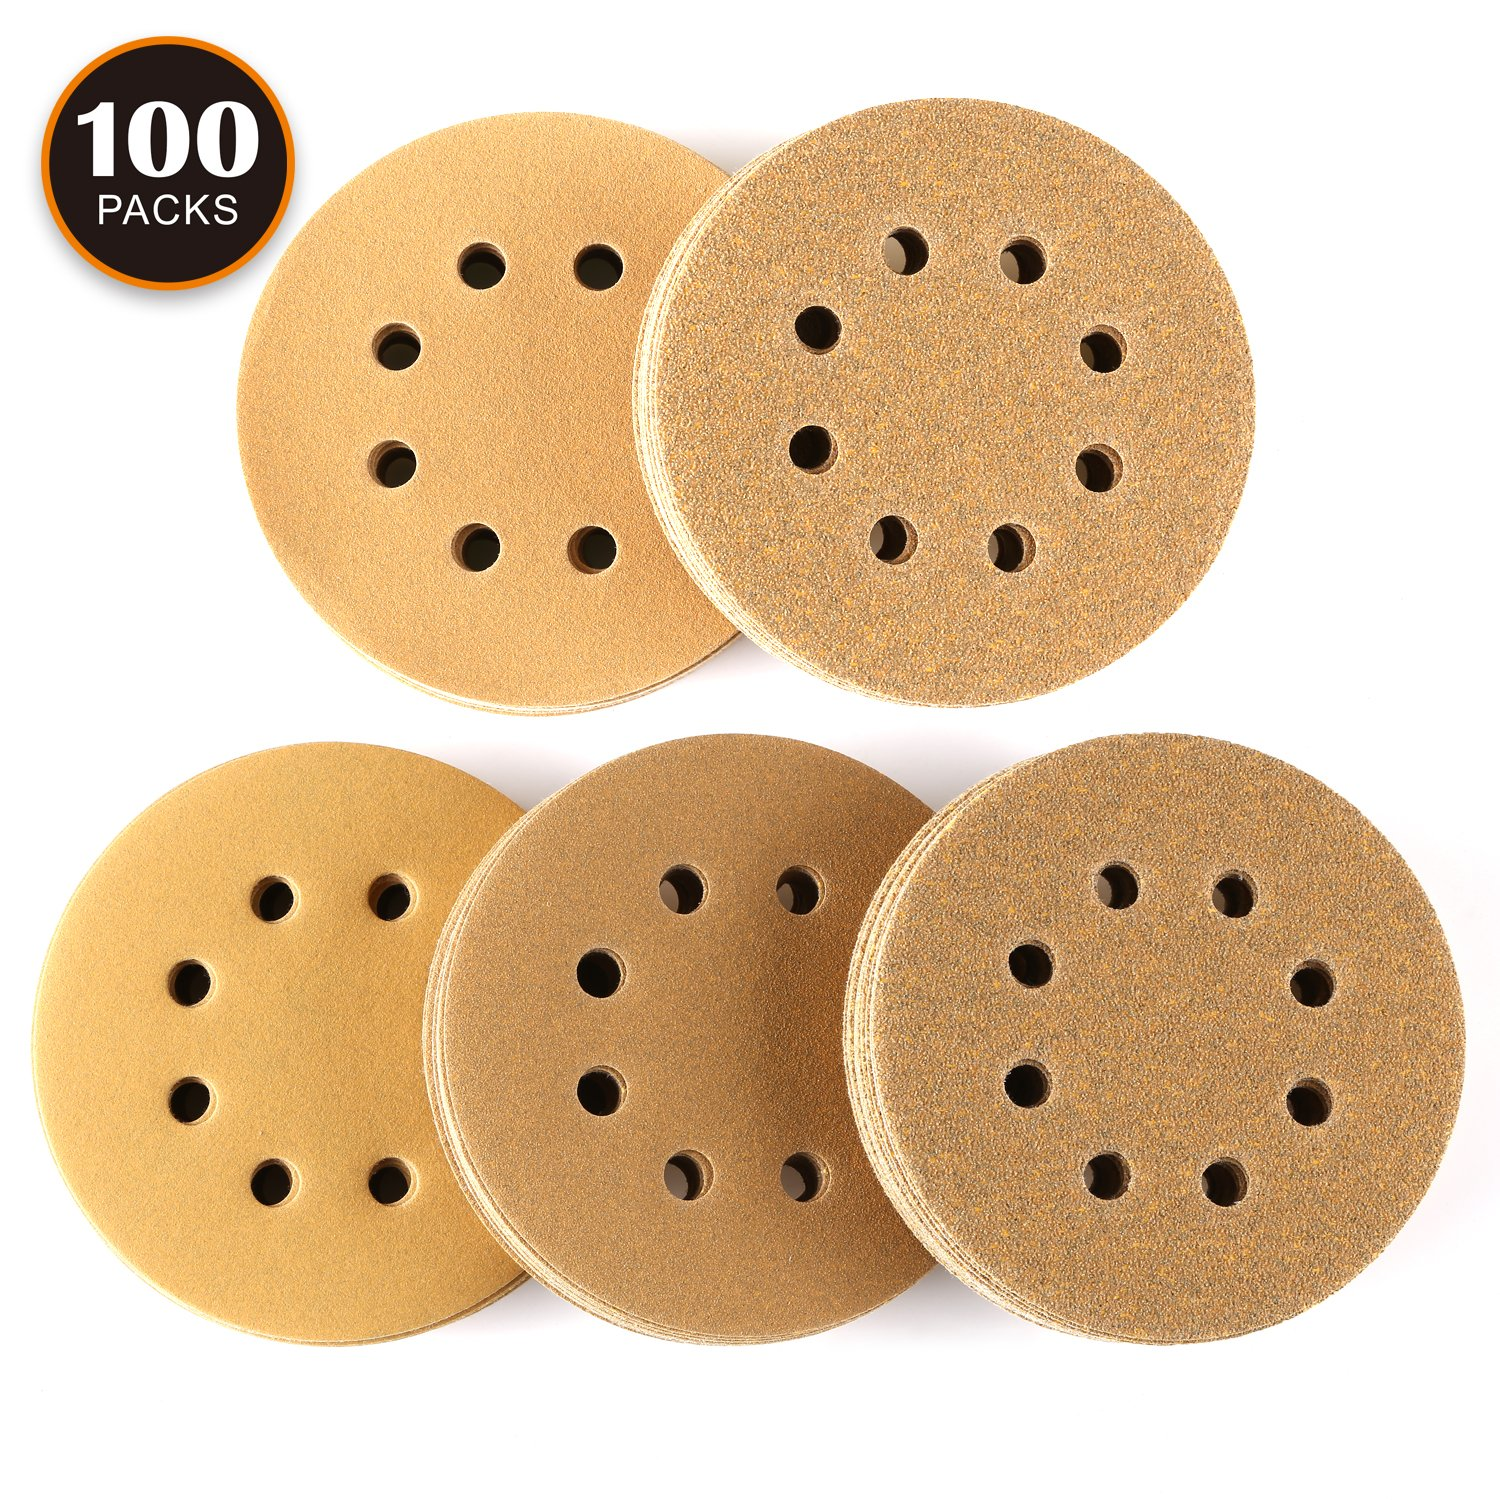 100PCS 125mm Sanding Discs, Anti-Blocking Sander Paper for Makita, Bosch, Tacklife, Dewalt, Ryobi, Vonhaus Random Orbit Sander, 20Pcs Each Assorted 60/80/120/150/220 Grits - TACKLIFE ASD04C ASD04C-UK